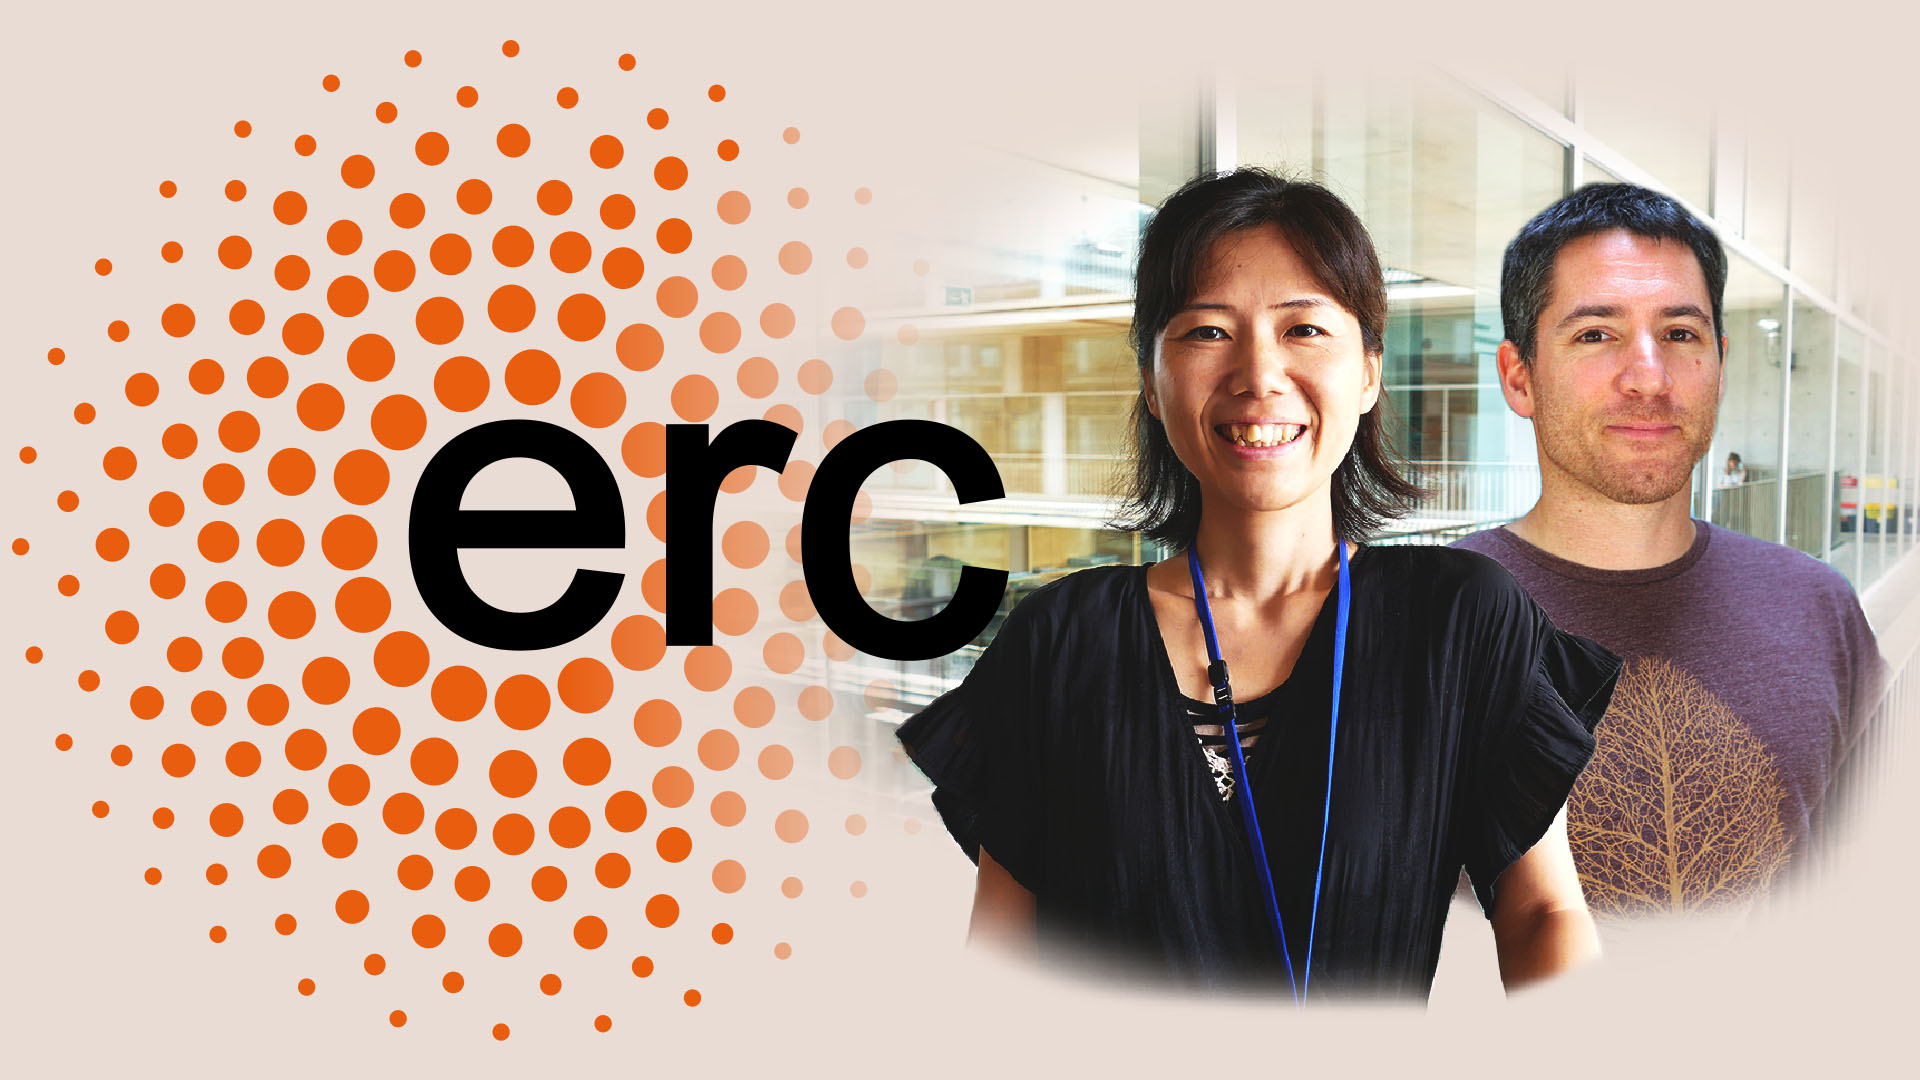 EMBL Barcelona and CRG have received two prestigious ERC Consolidator Grants